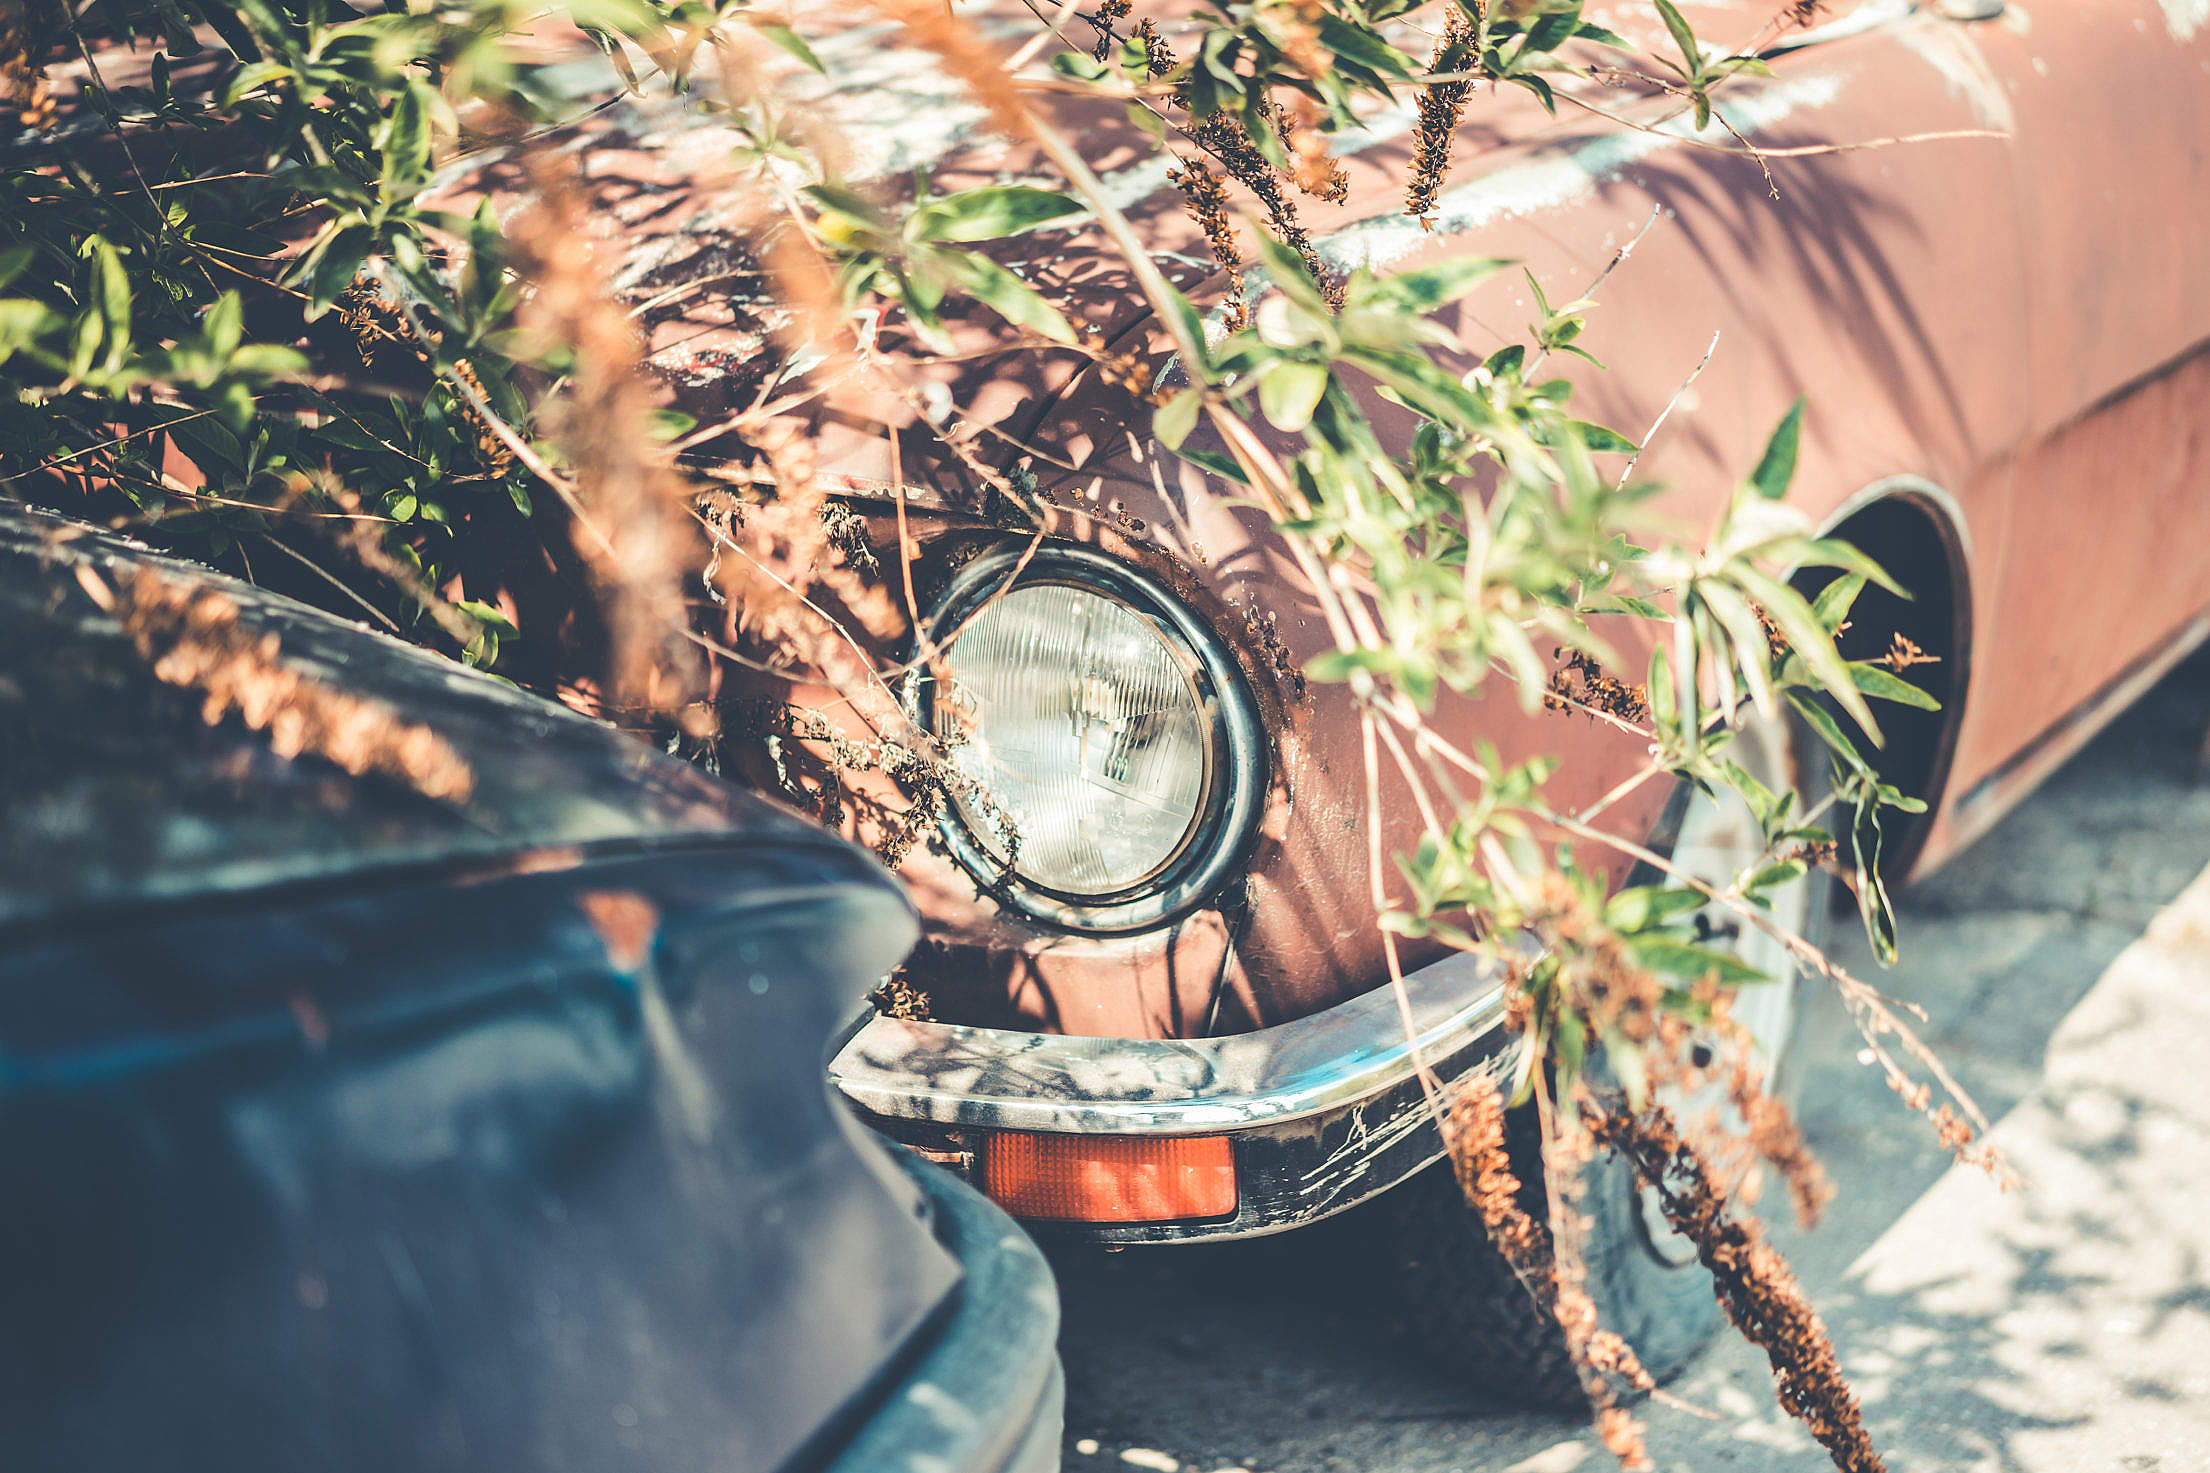 Abandoned Rusty Old Timer Automobile Free Stock Photo